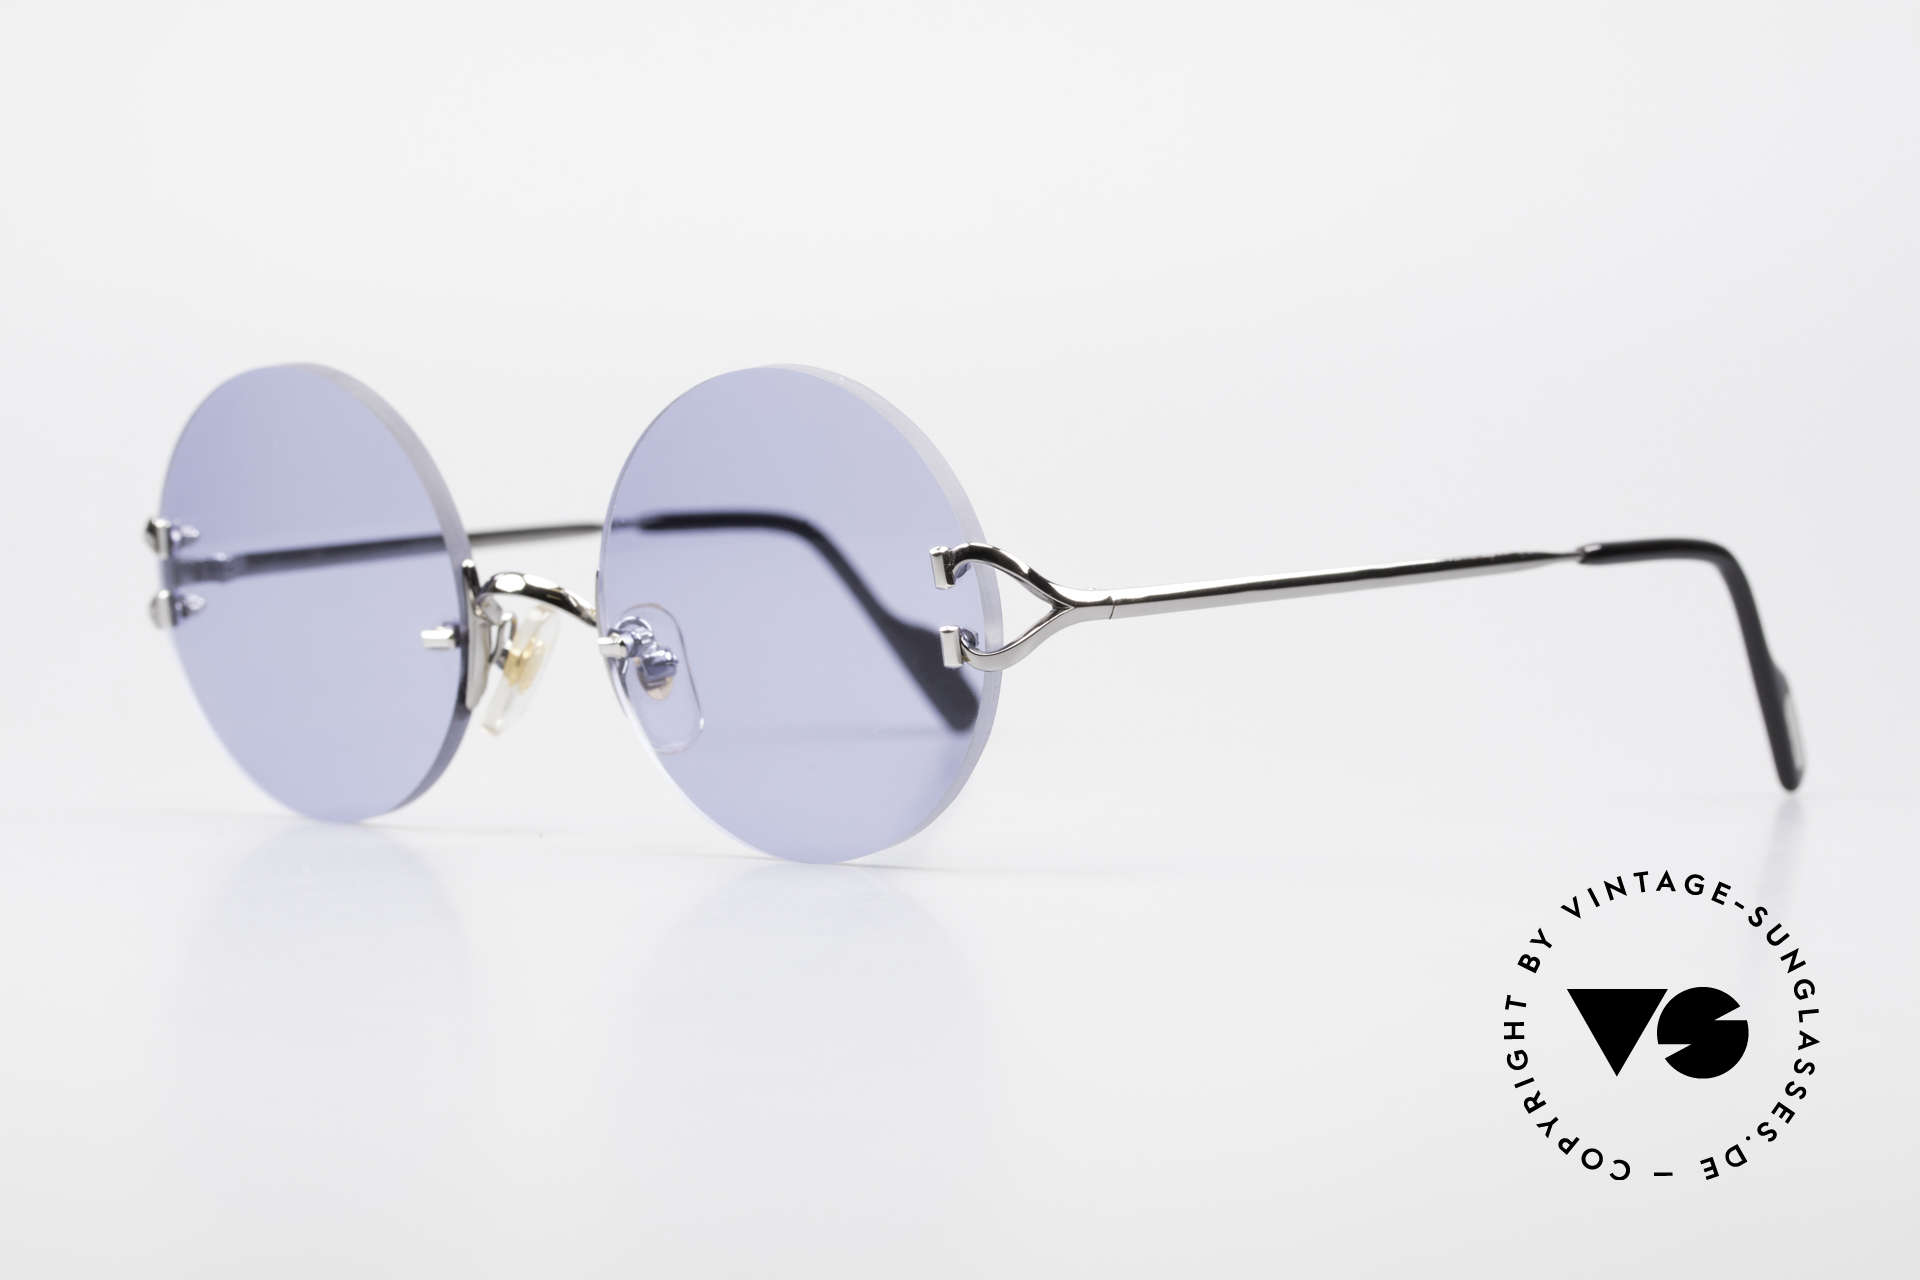 Cartier Madison Round Sunglasses Gunmetal, noble rimless CARTIER luxury sunglasses from 1997, Made for Men and Women